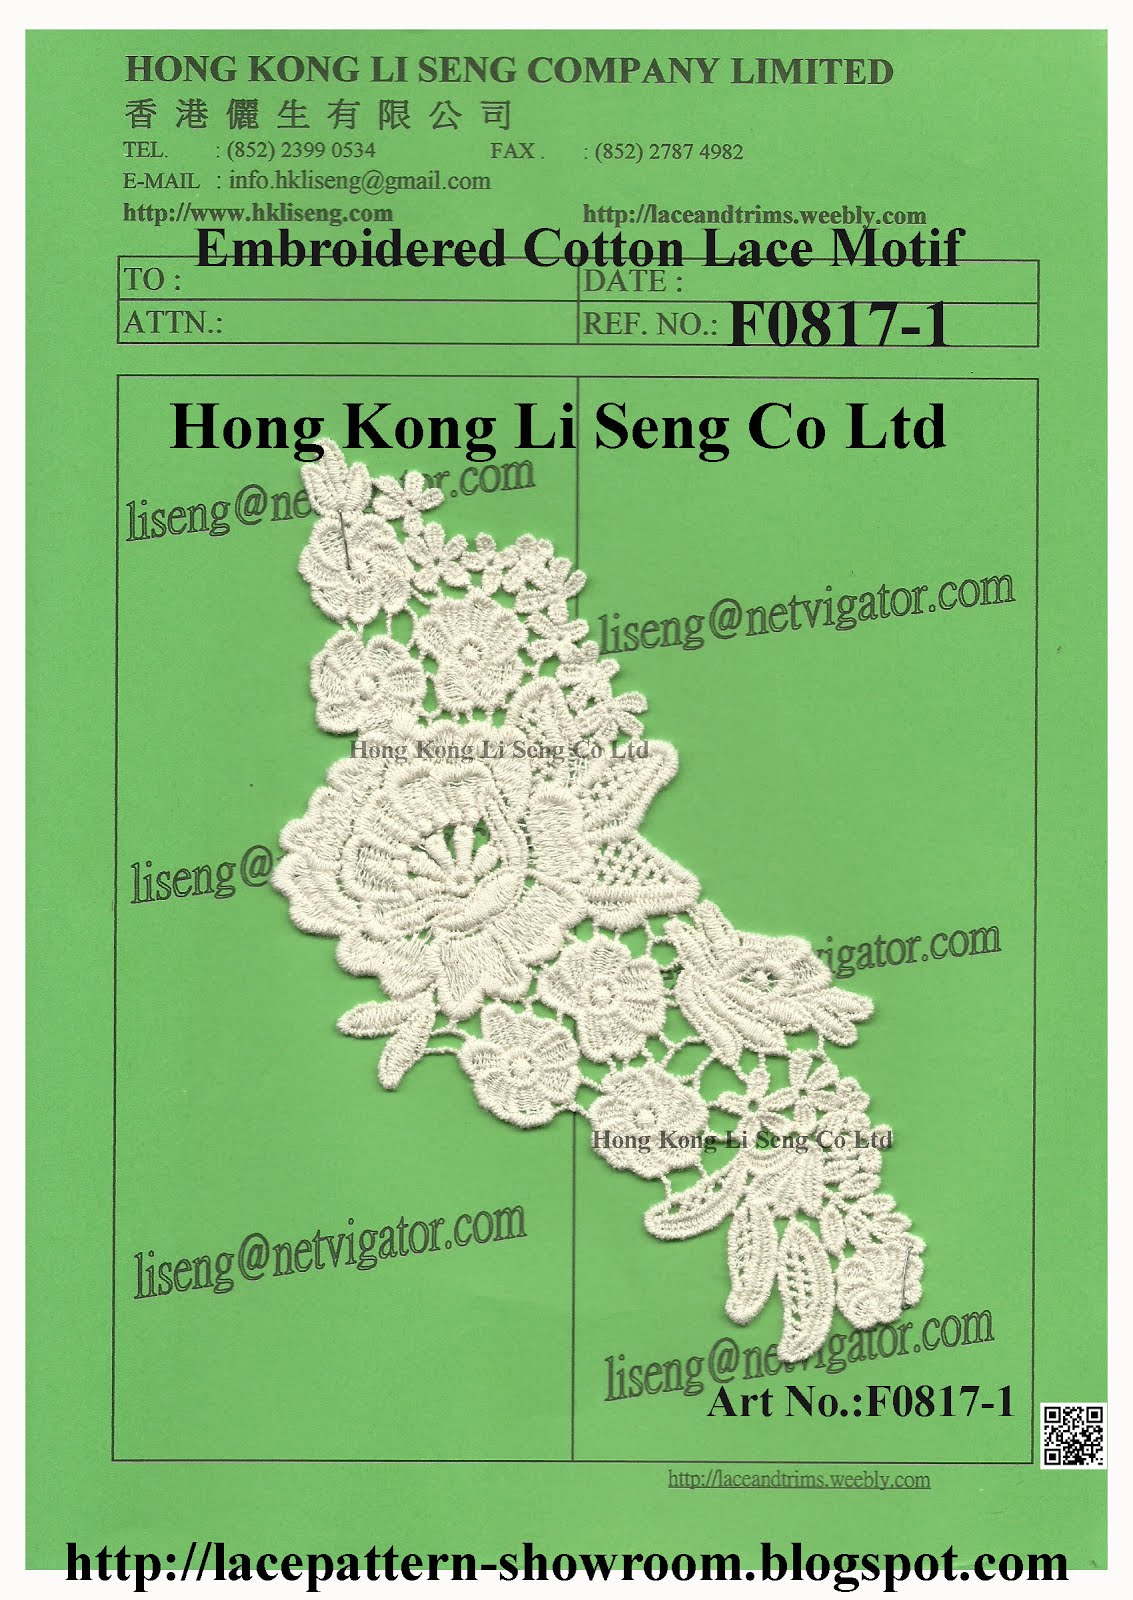 New Water Soluble Embroidered Cotton Lace Motif